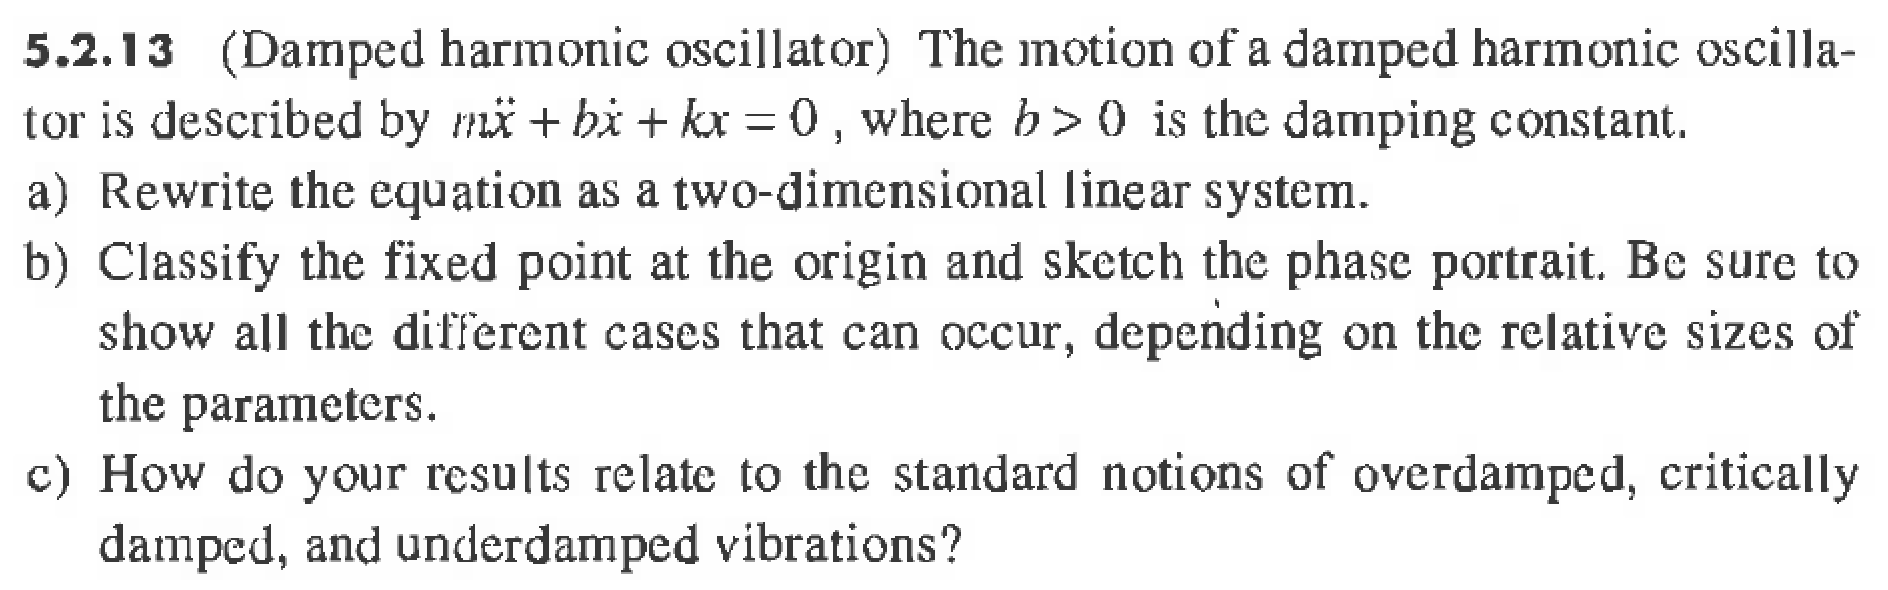 Reference: Nonlinear Dynamics and Chaos (Strogatz, Steven H.), Page 143